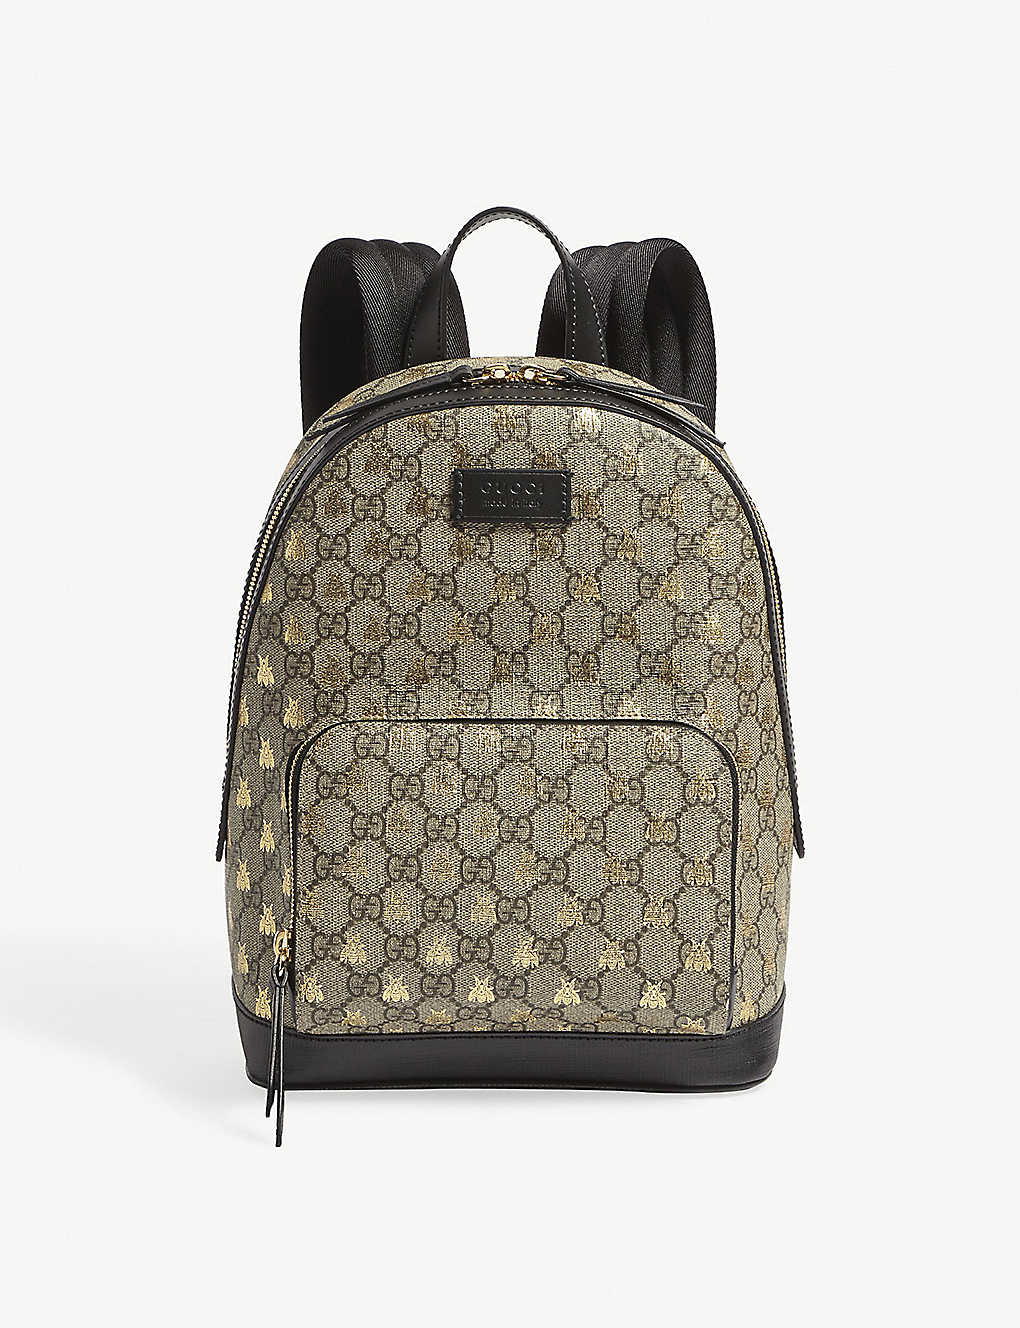 GUCCI - Bee GG Supreme backpack  6a3af1cabbbed